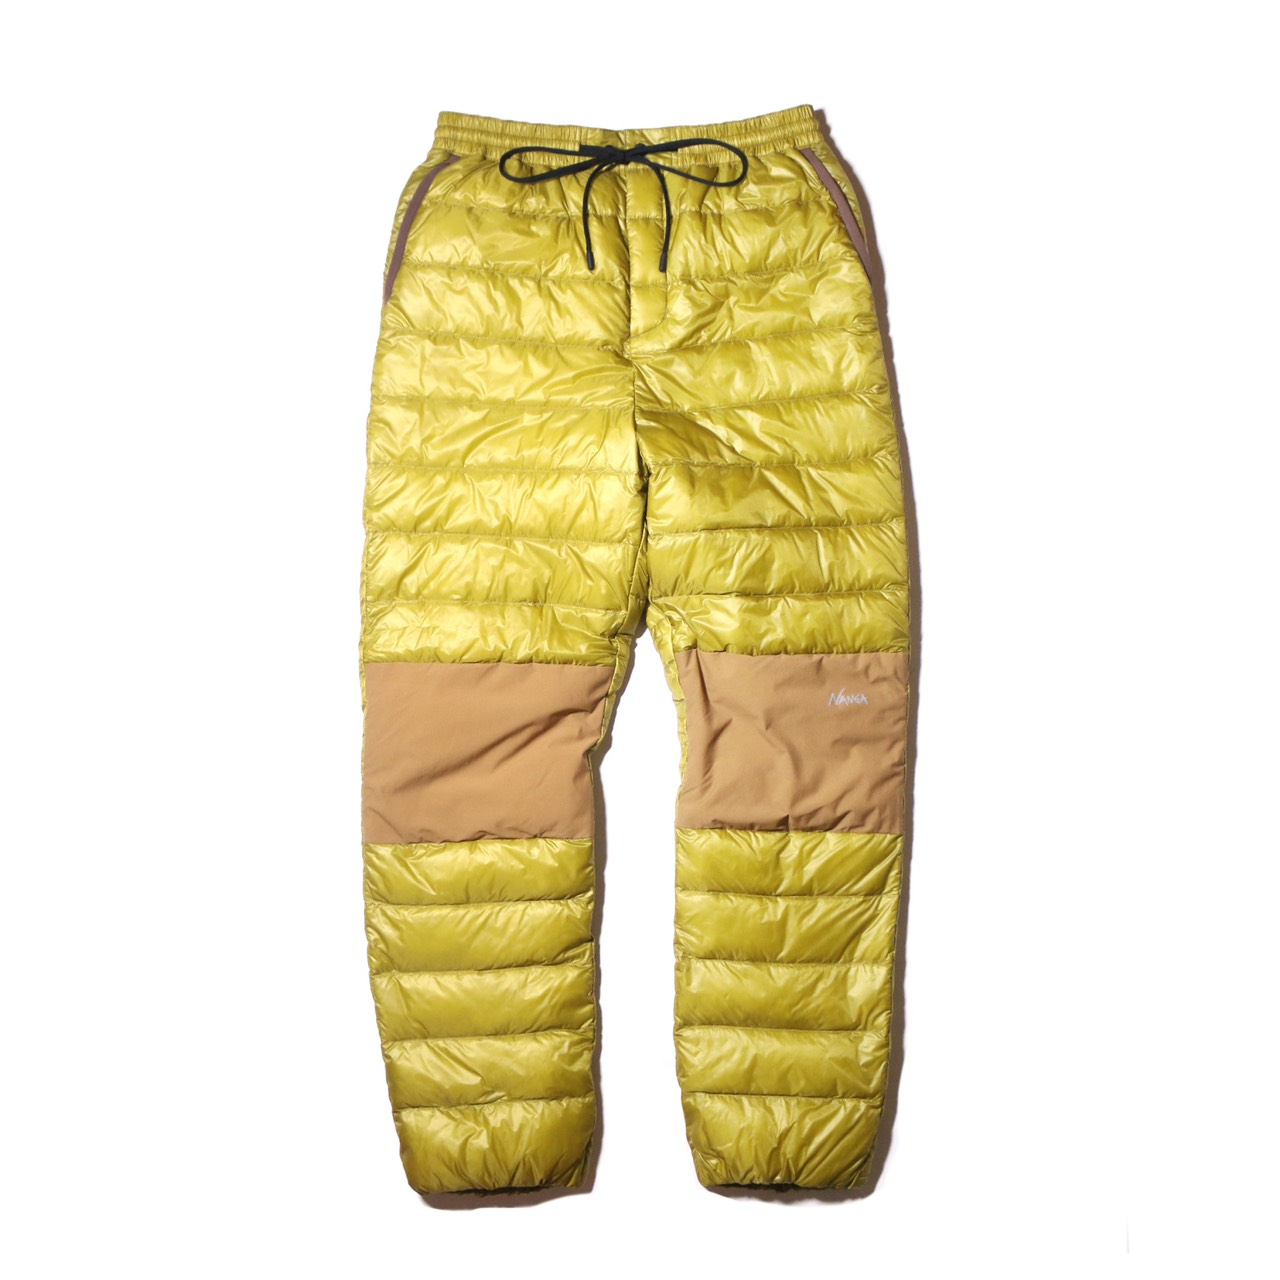 MOUNTAIN LODGE DOWN PANTS (WOMAN)